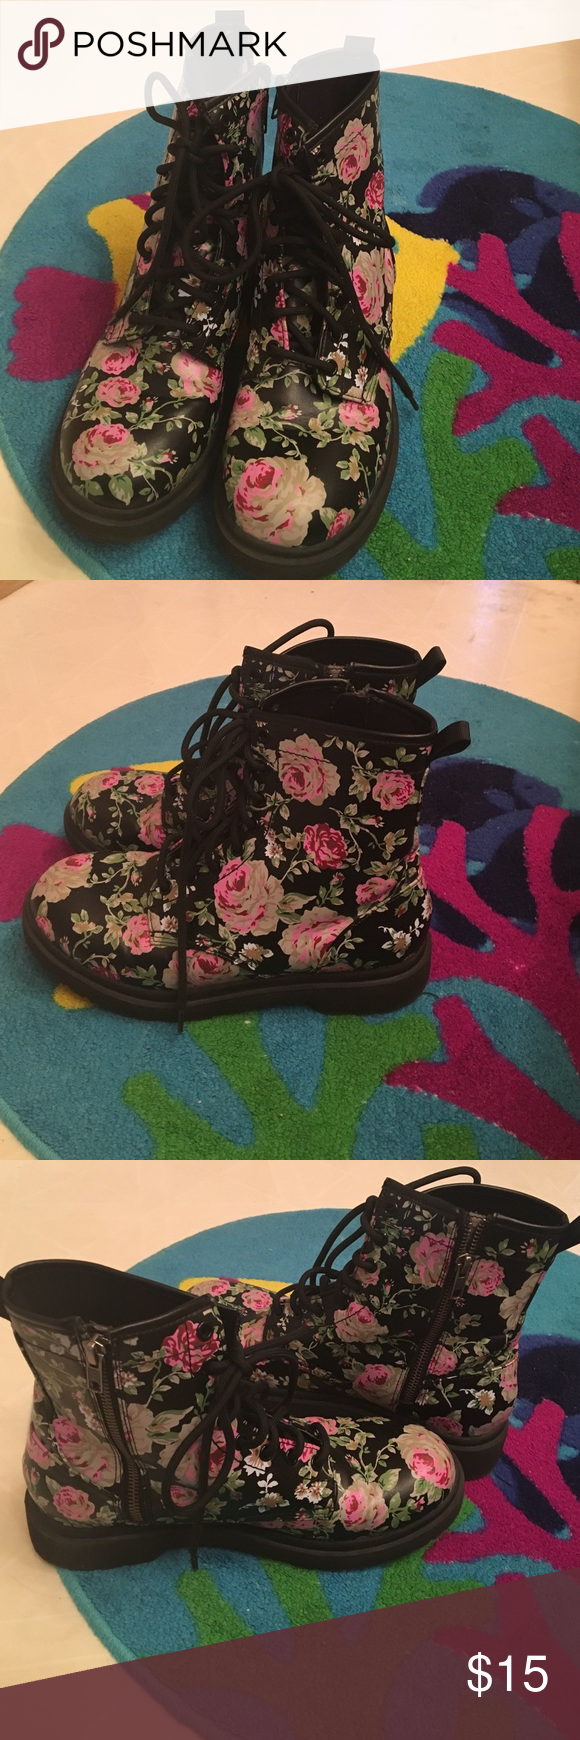 Rose Printed Lace Up Boots Doc Marten Style Black With